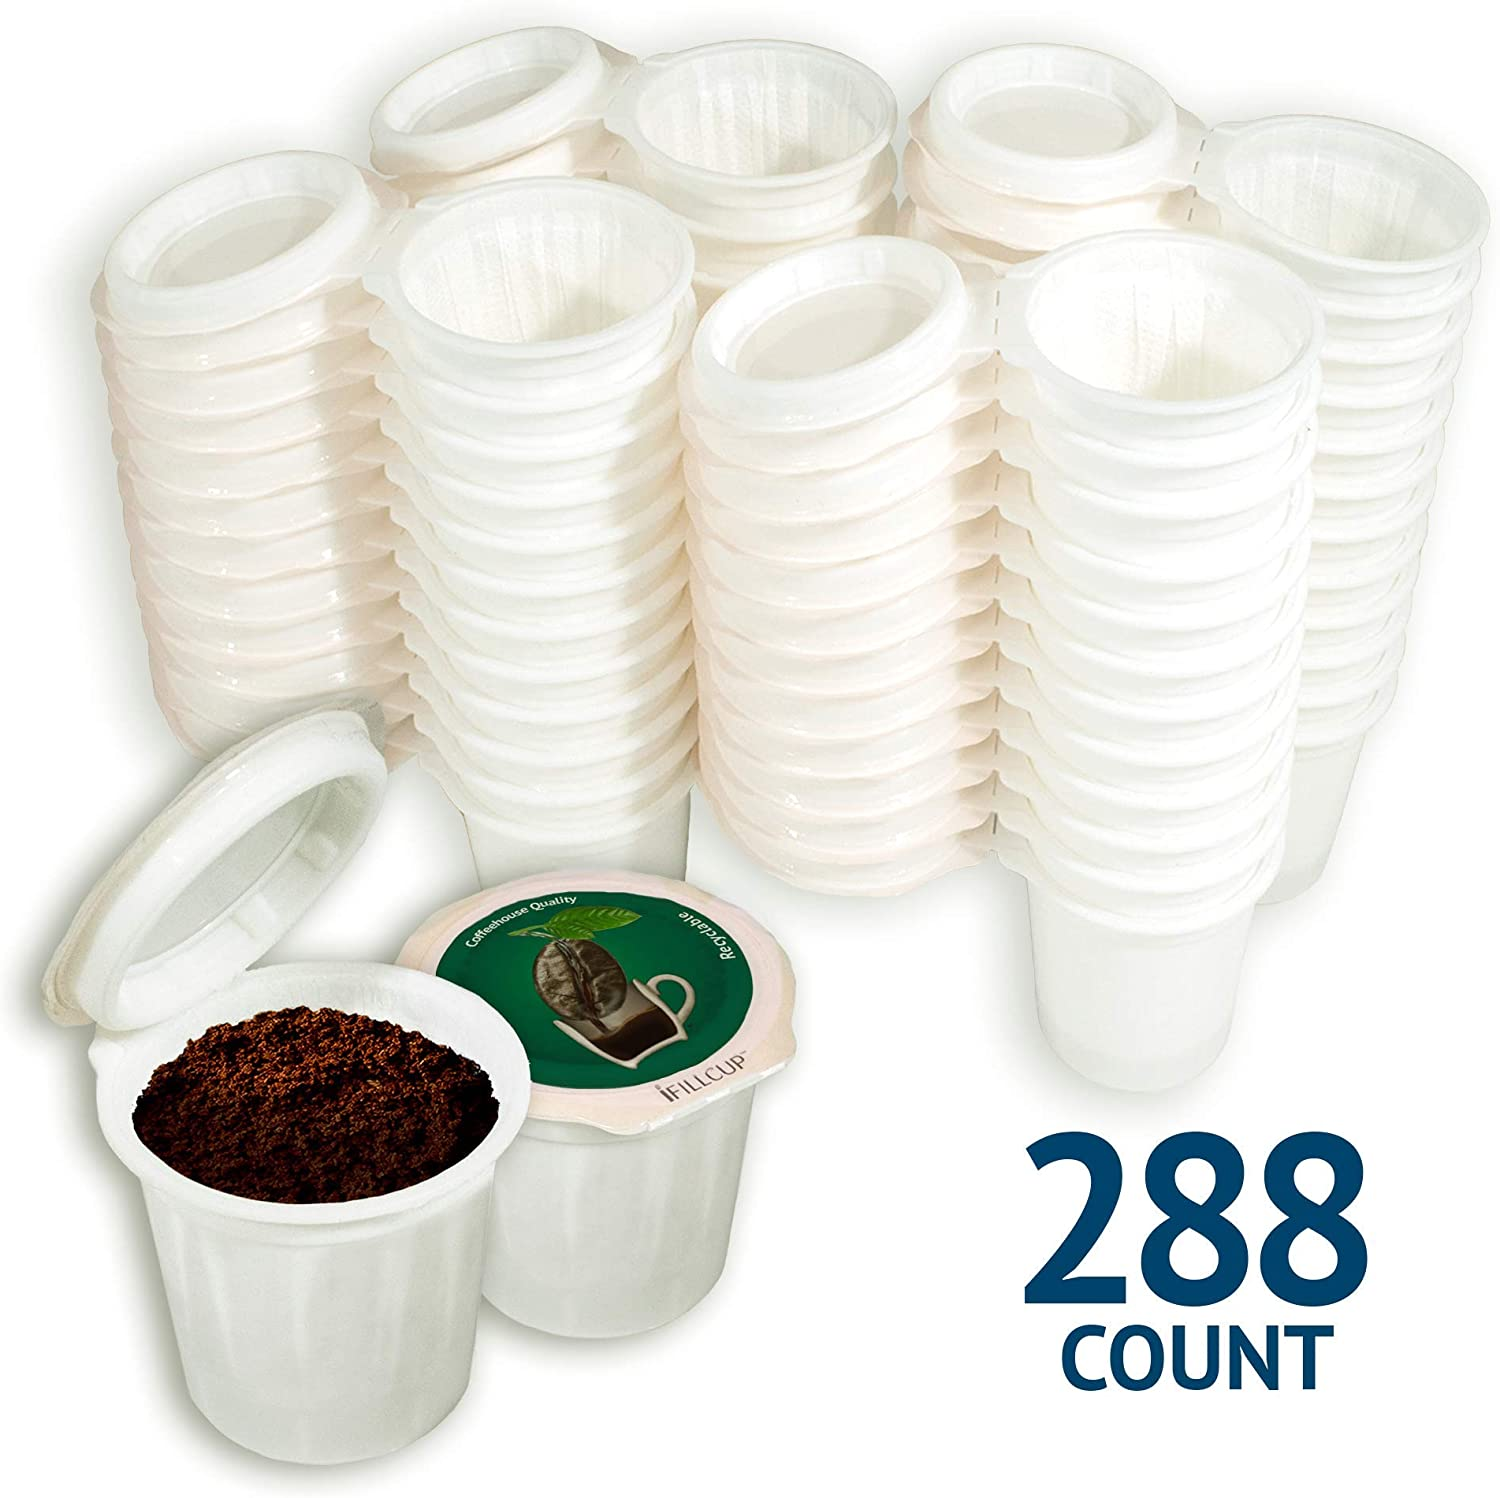 iFillCup, fill your own Single Serve Pods. Eco friendly 100% recyclable pods for use in all k cup brewers including 1.0 & 2.0 Keurig. 288 iFill Cup airtight seal in freshness pods. (Green)